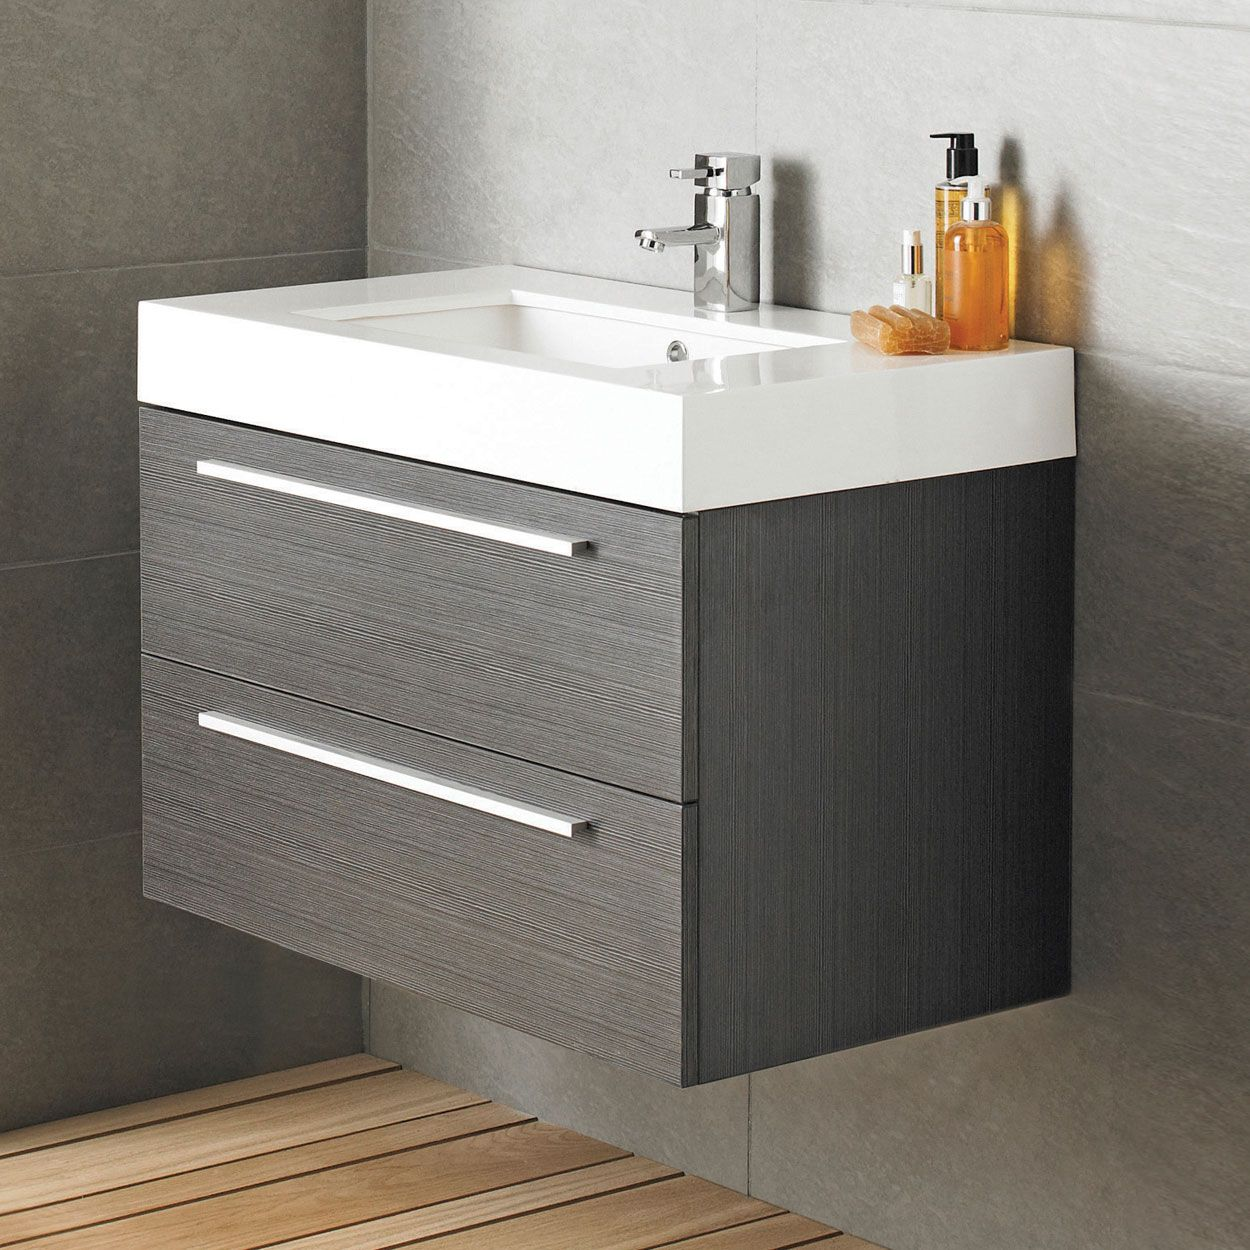 Bathroom Cabinets 500mm Wide vienna wall mounted bathroom vanity unit, 800mm wide, textured